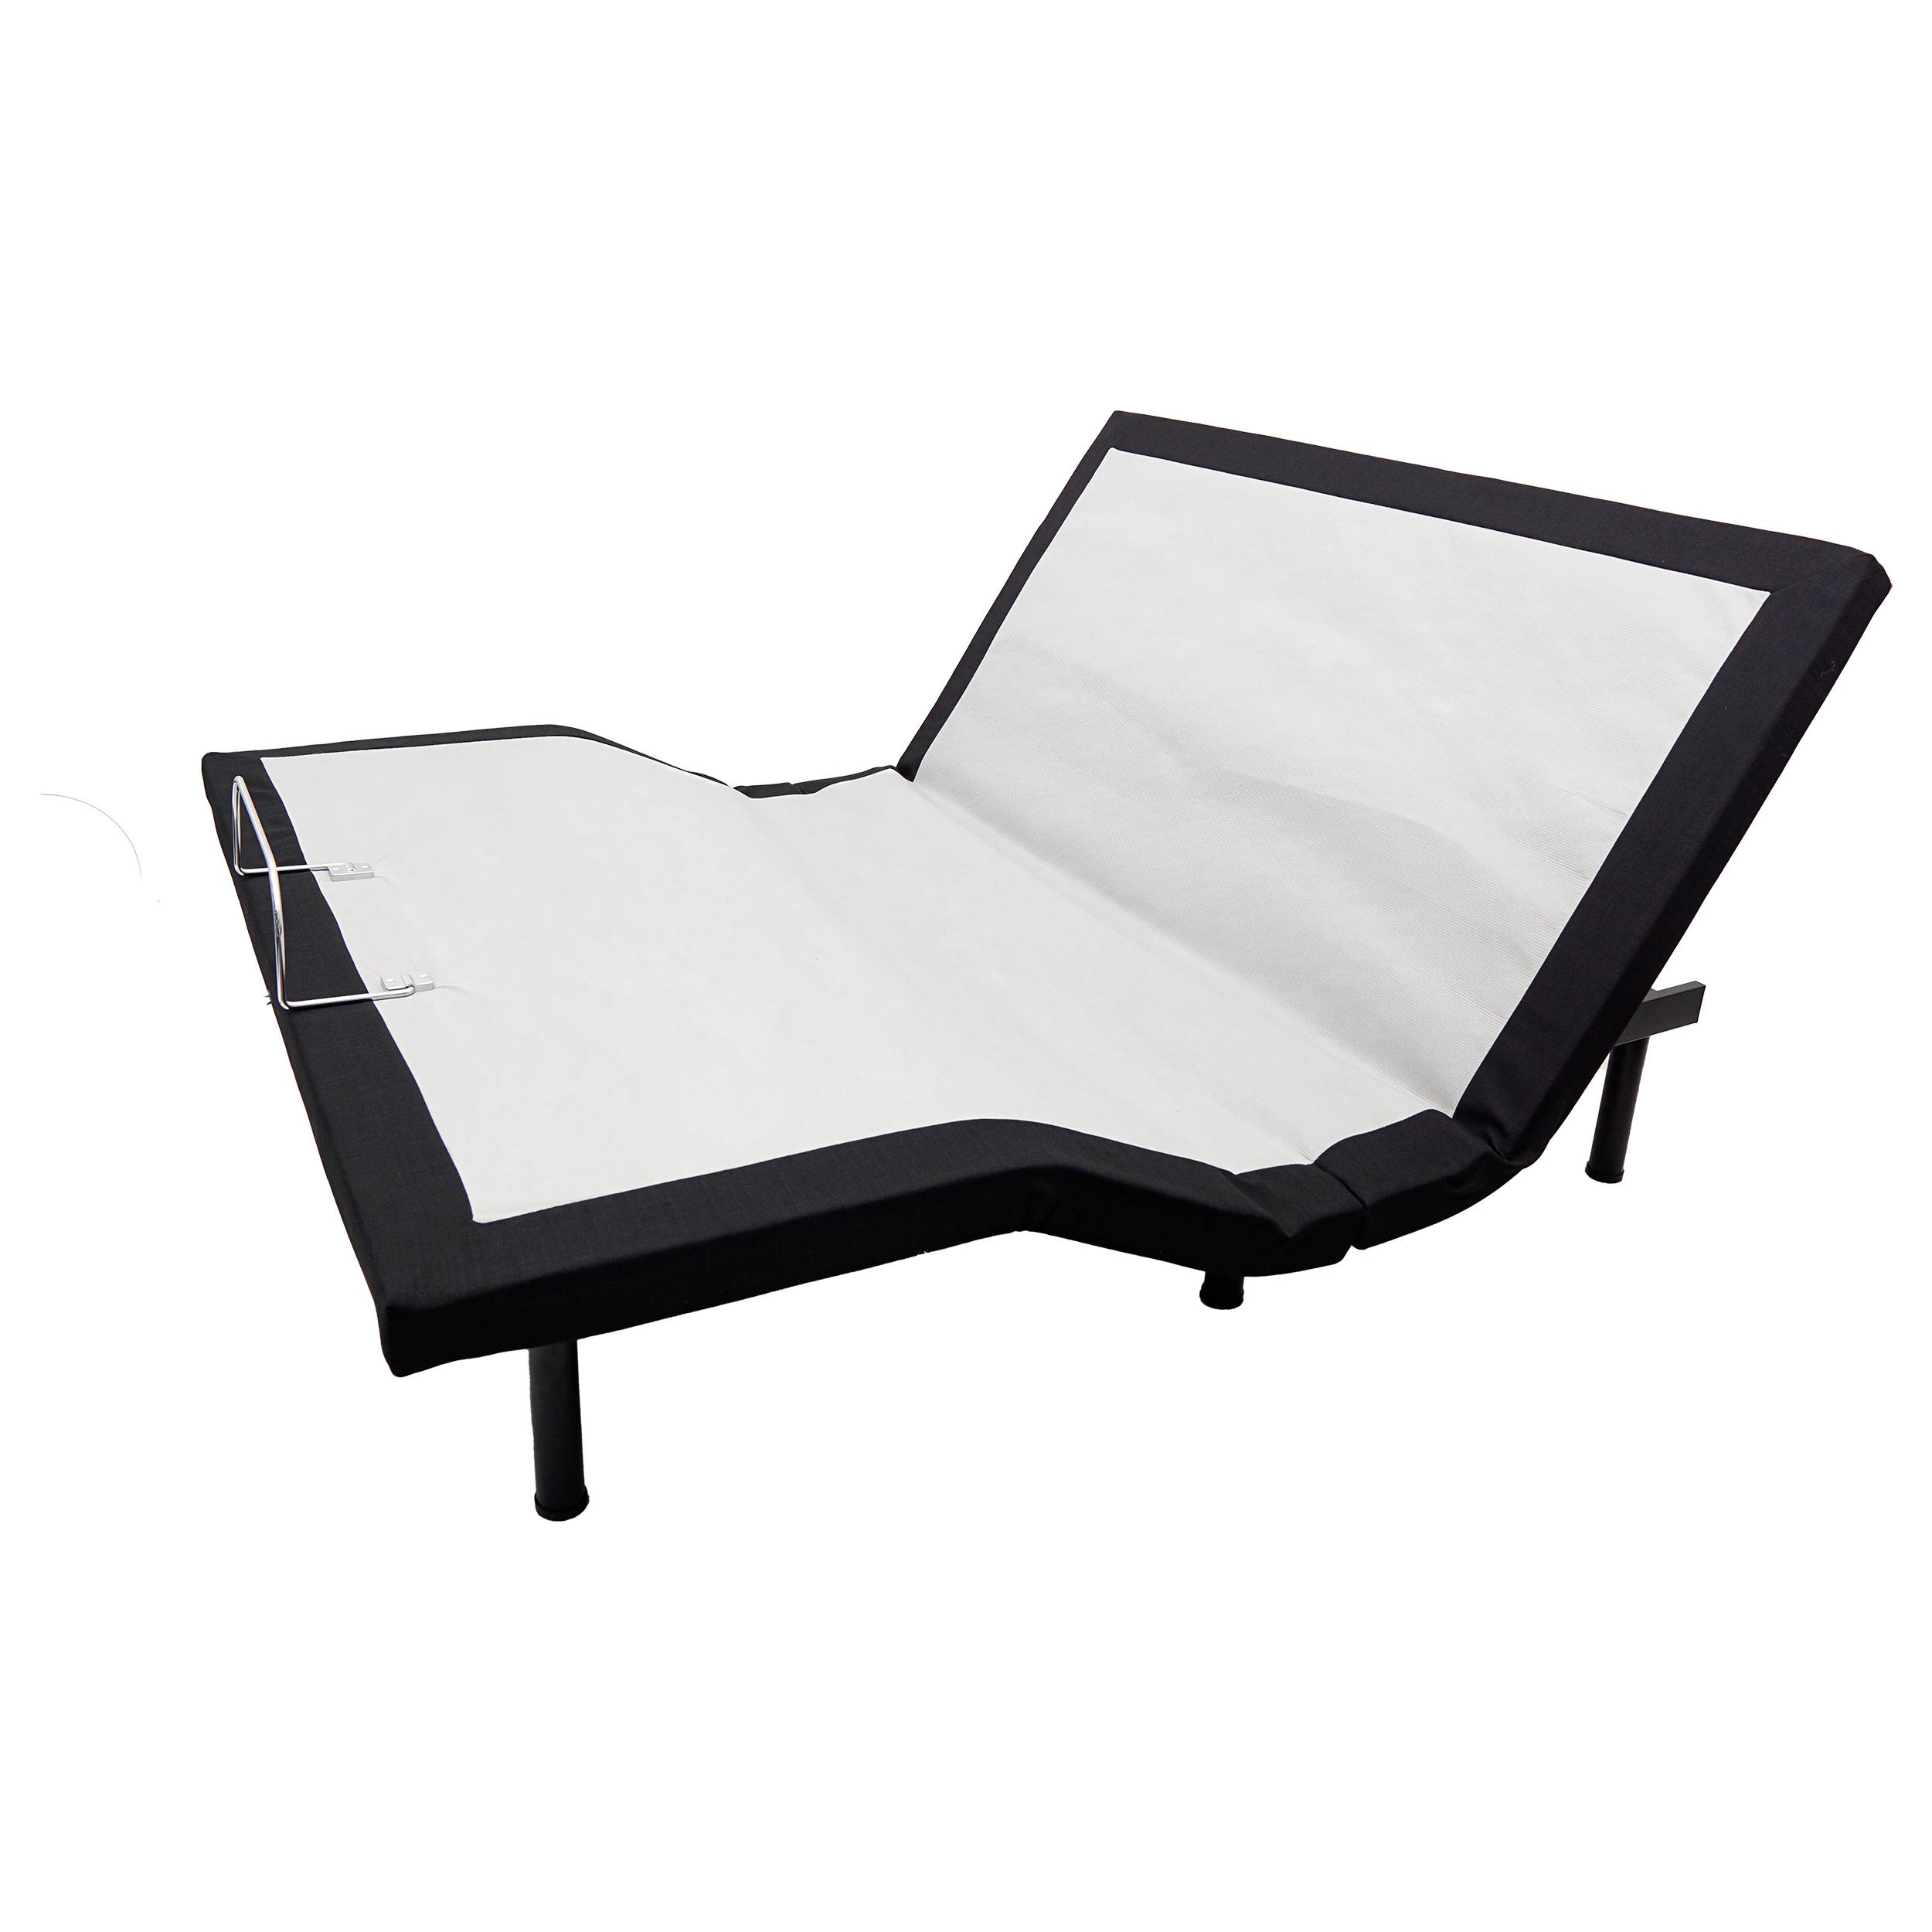 Bluetooth & App customizable 3 linear-motors adjustable bed base with neck tilt & massage